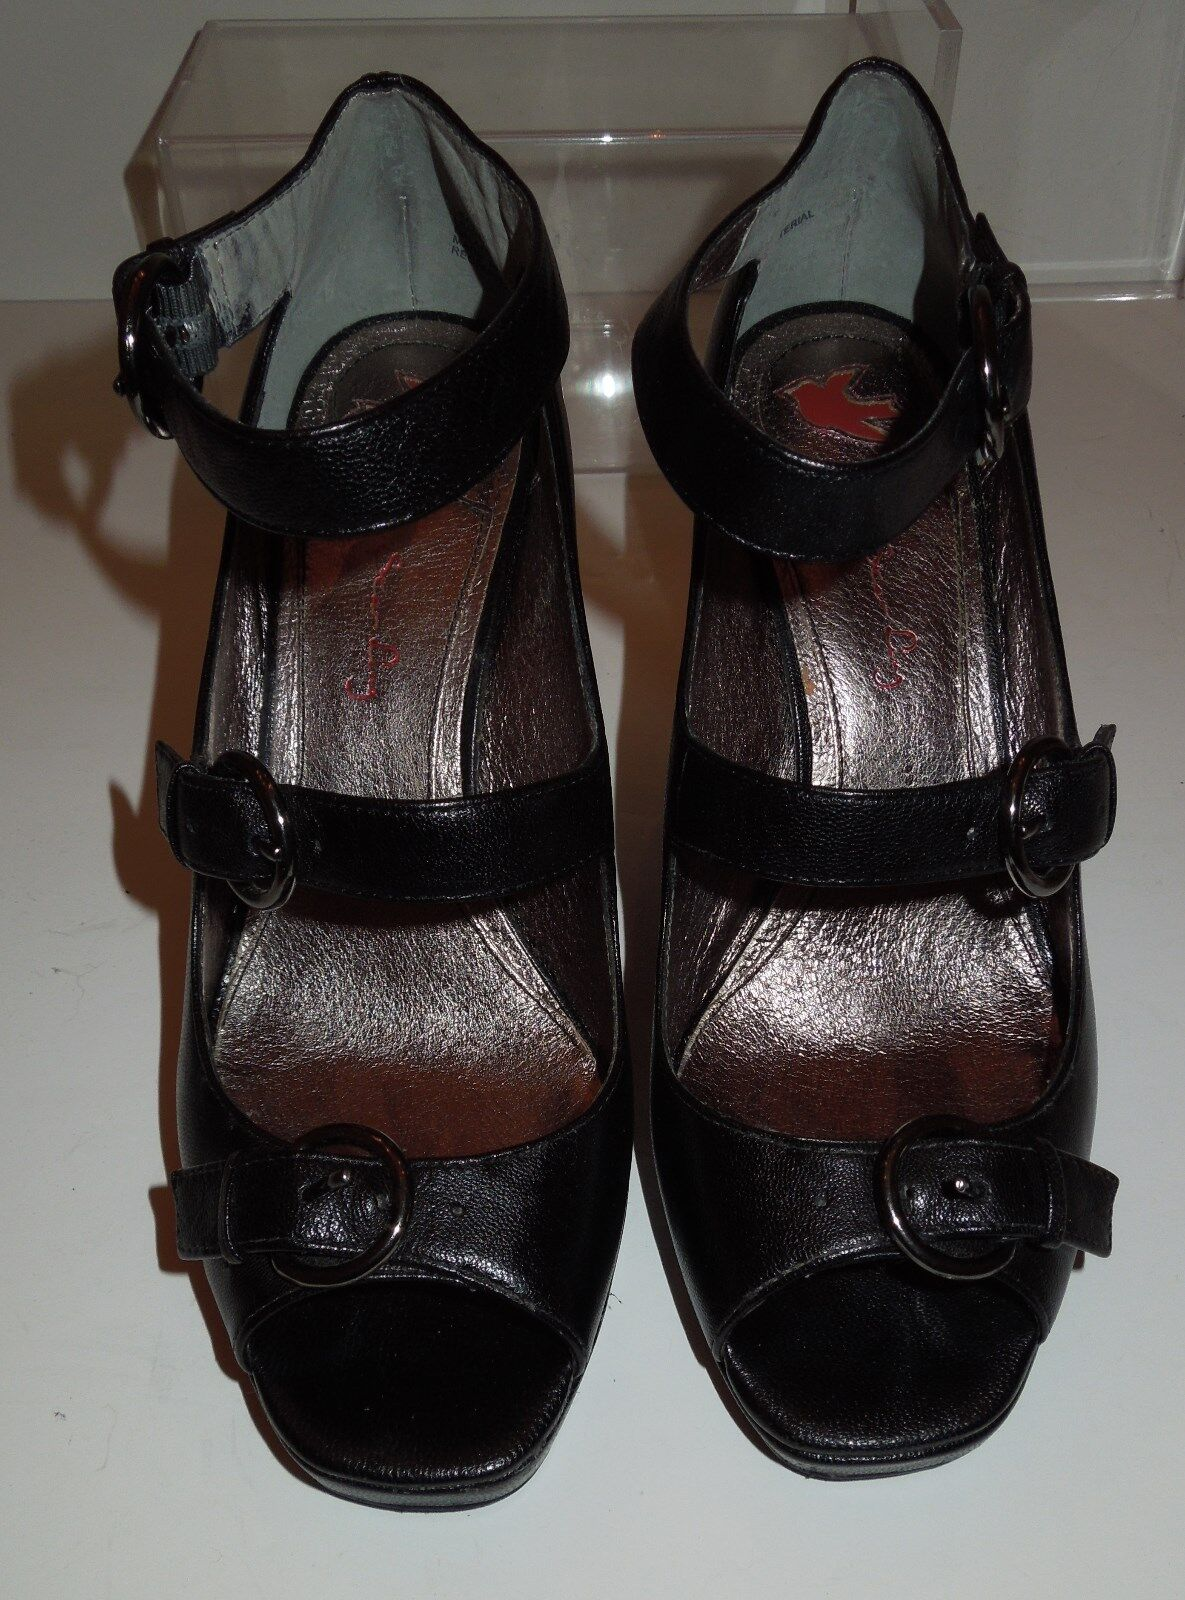 EUC Star Ling  Recruiter  Black Leather Ankle Strap Platform Wedge 7.5M